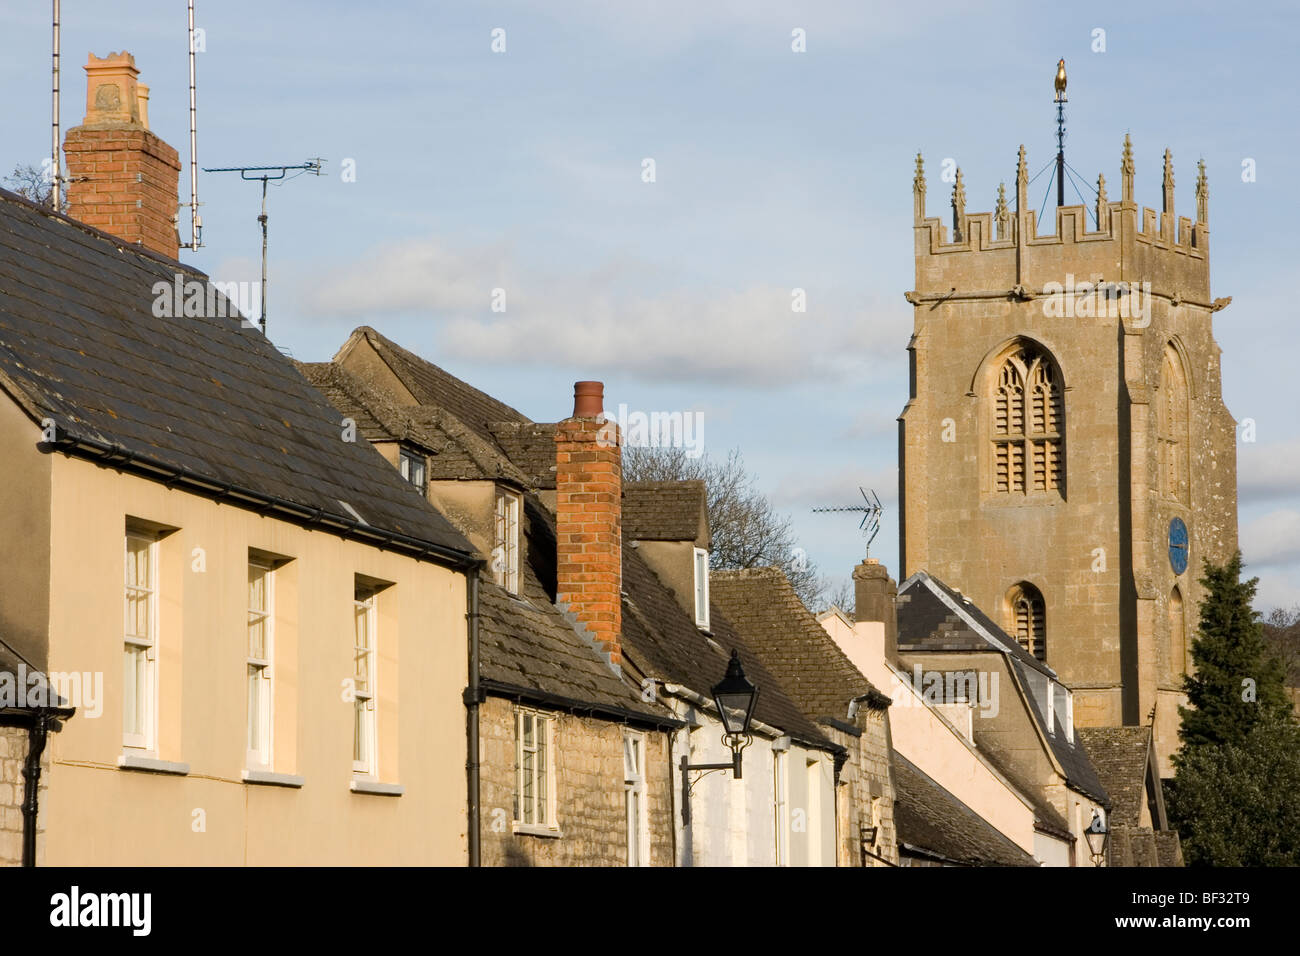 buildings and the tower of Saint Peters Church, Winchcombe, The Cotswolds, Gloucestershire, England Stock Photo